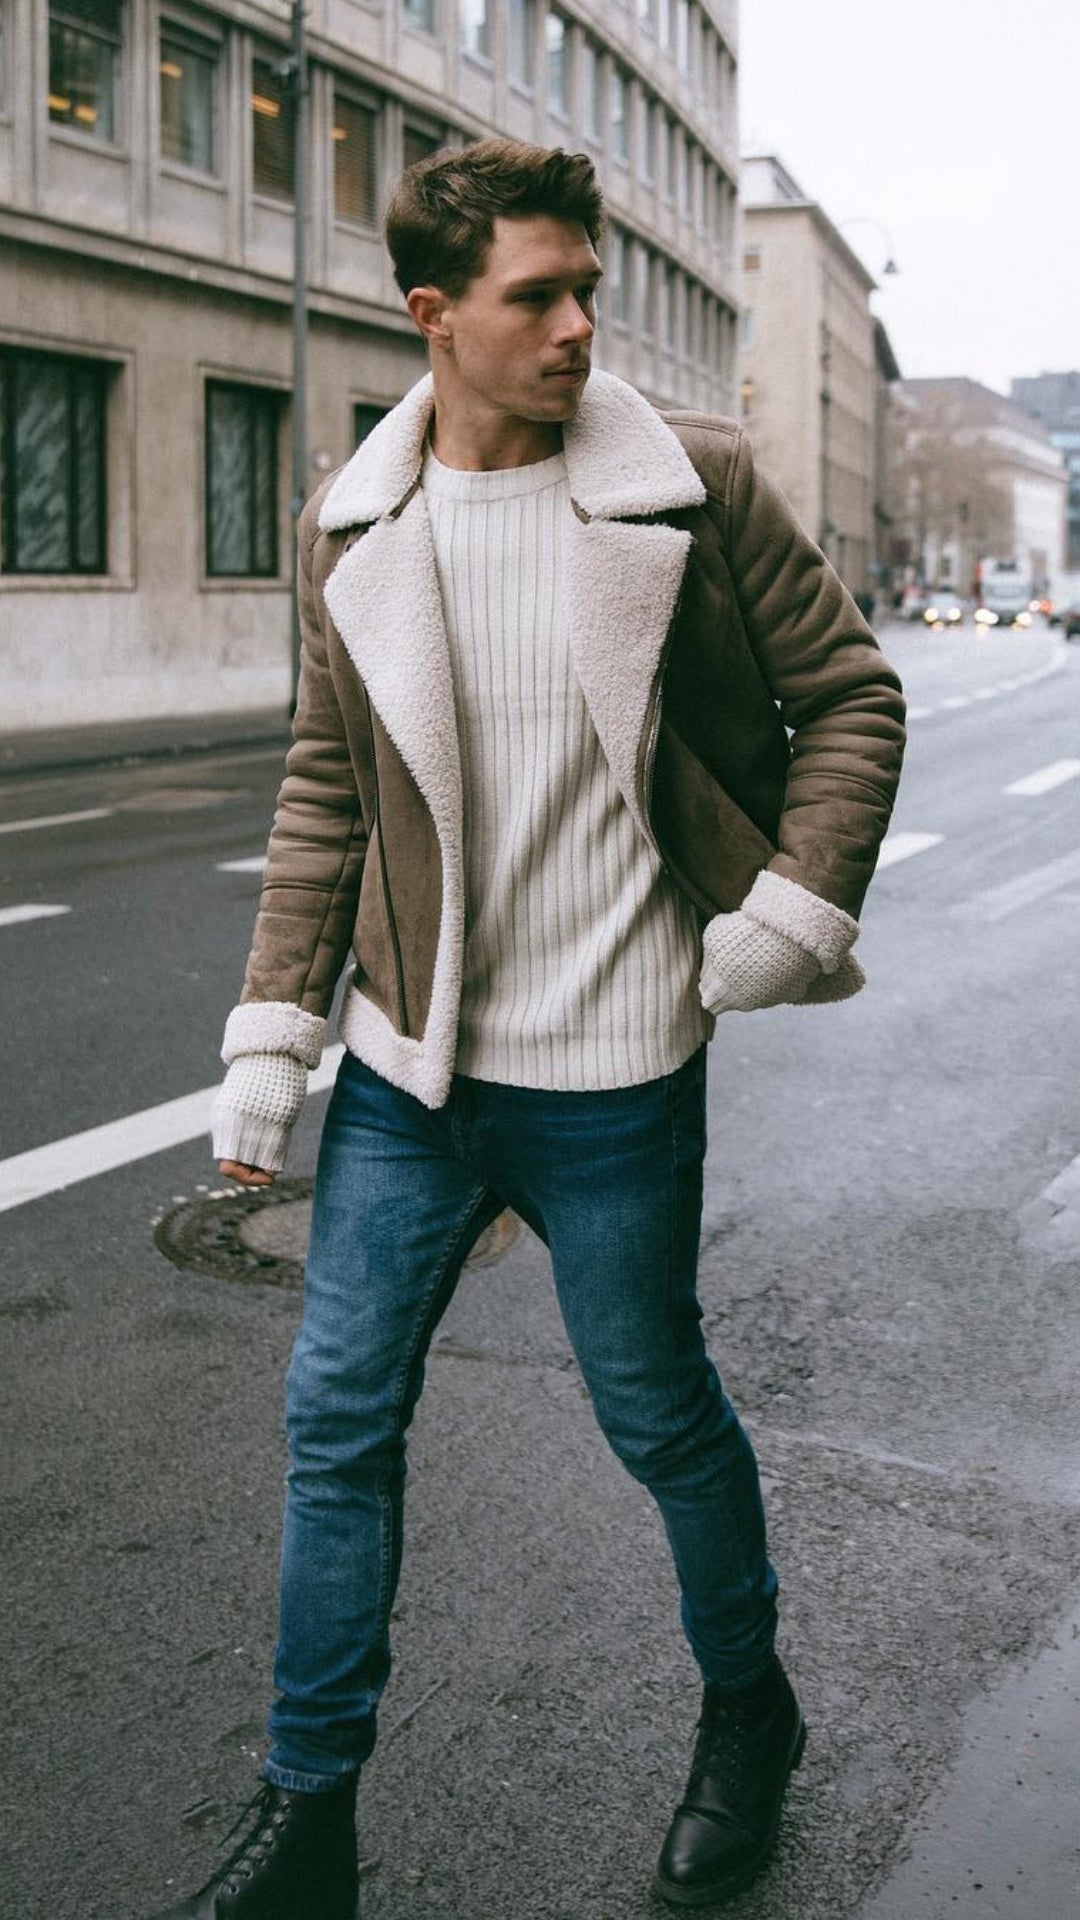 5 Amazing Outfits To Elevate Your Winter Style Game #winterstyle #mensfashion #streetstyle